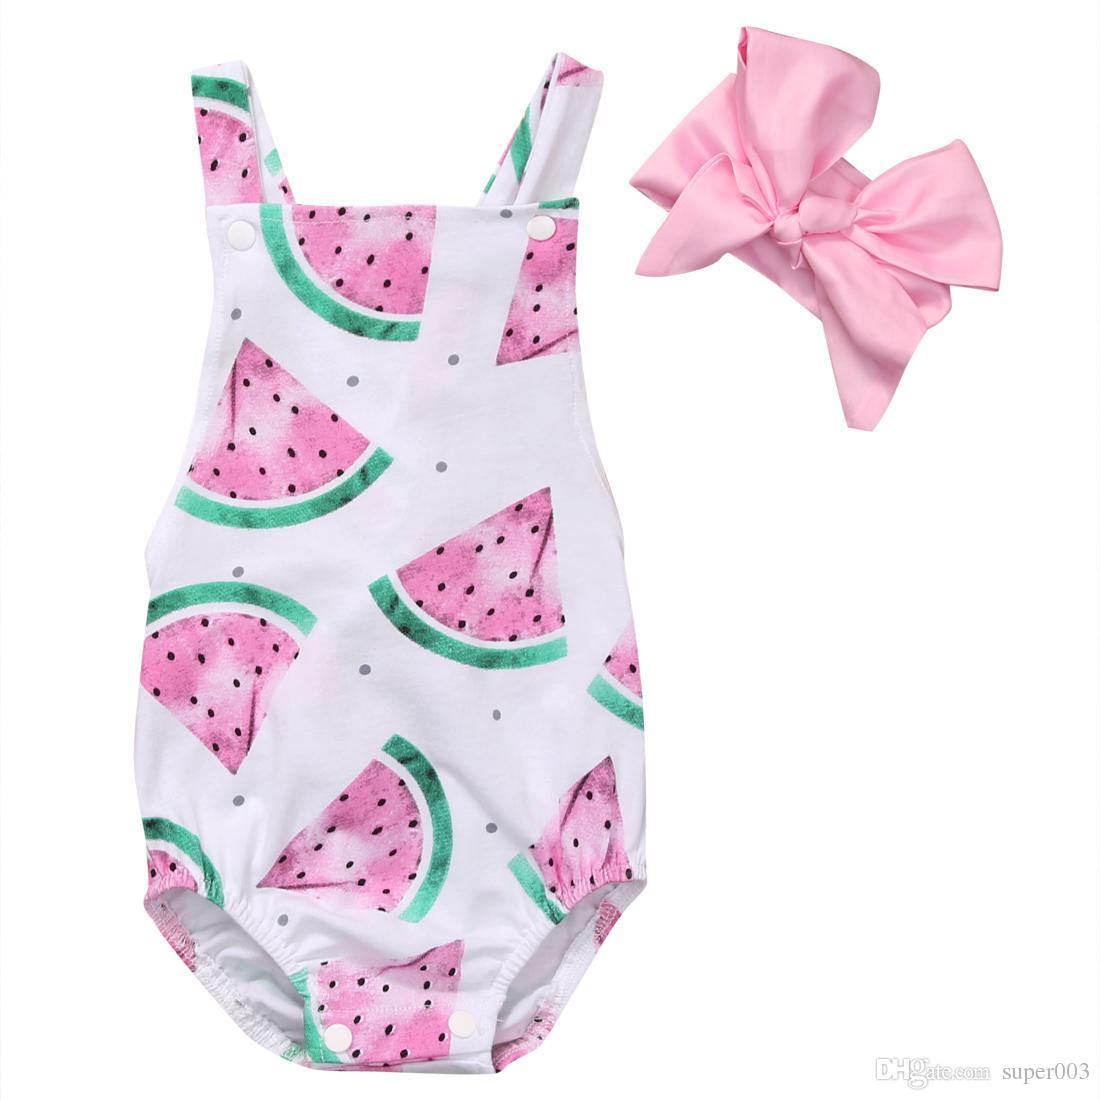 Bodysuits & One-pieces Girls' Baby Clothing Summer Newborn Baby Girls Floral Romper Jumpsuit Sunsuit Outfits Set Baby Girl Printed Sleeveless Bow Romper Blue Grade Products According To Quality